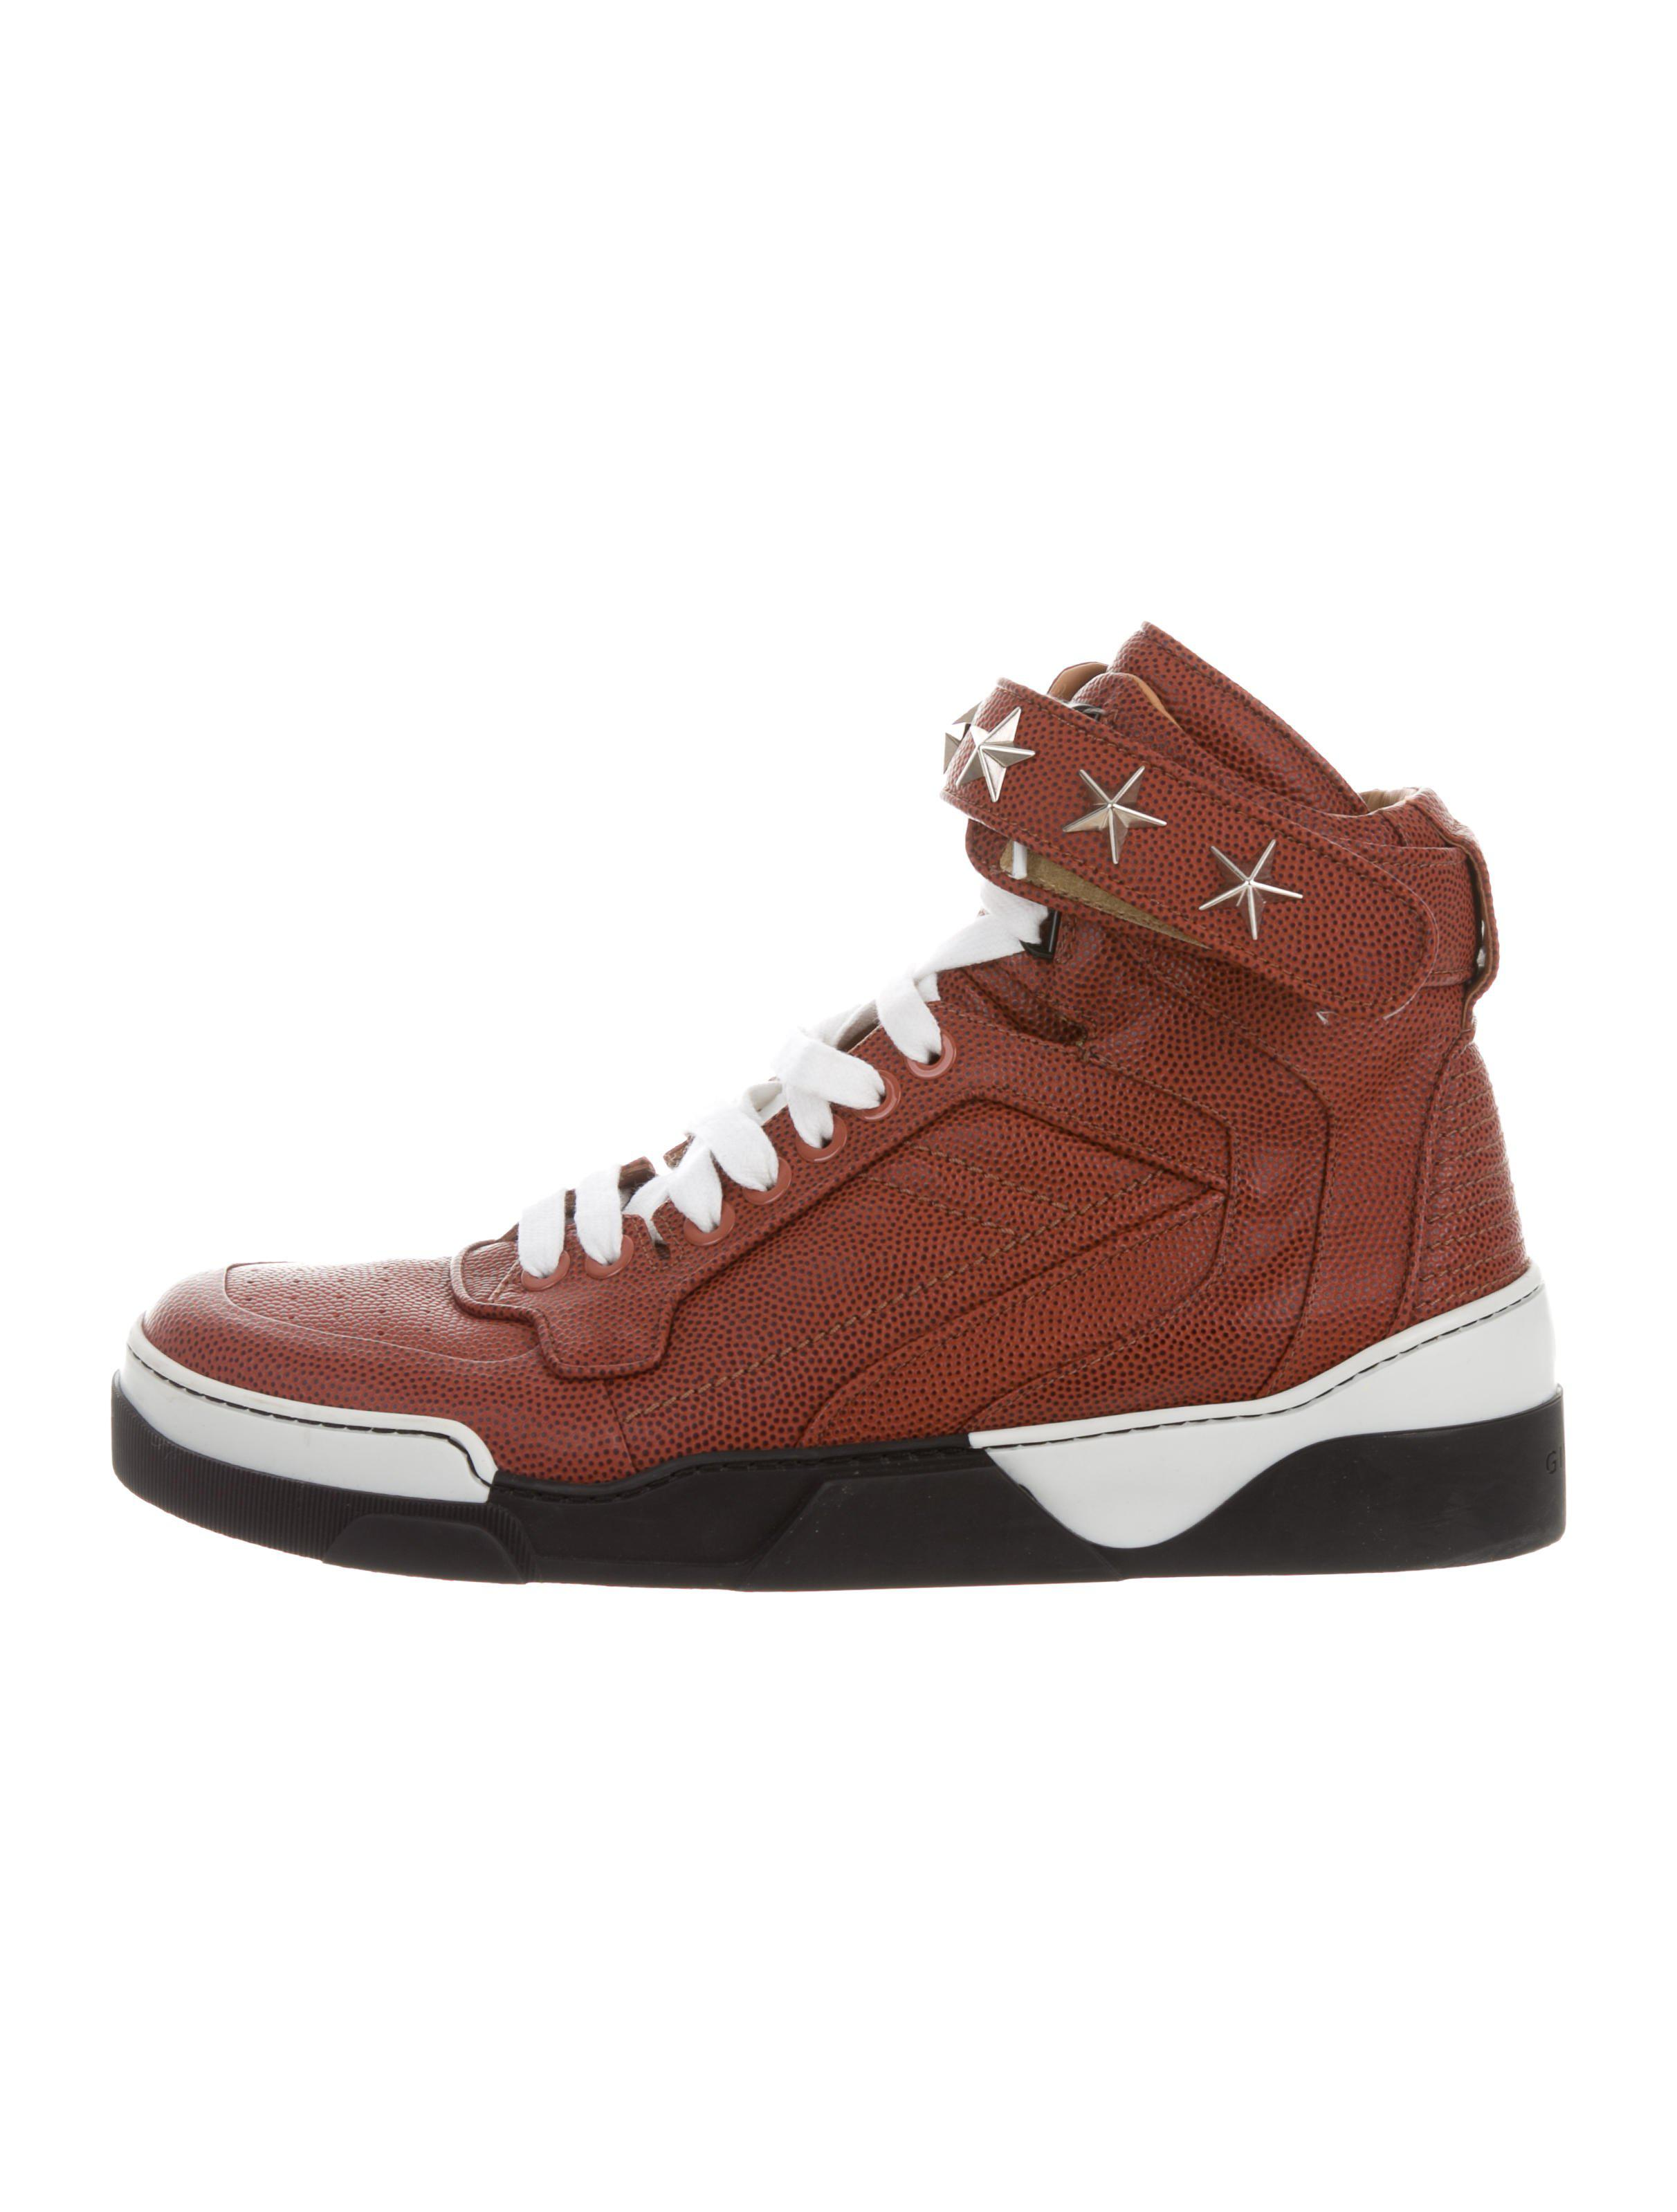 8146e989341b Lyst - Givenchy Tyson High-top Sneakers Brown in Brown for Men